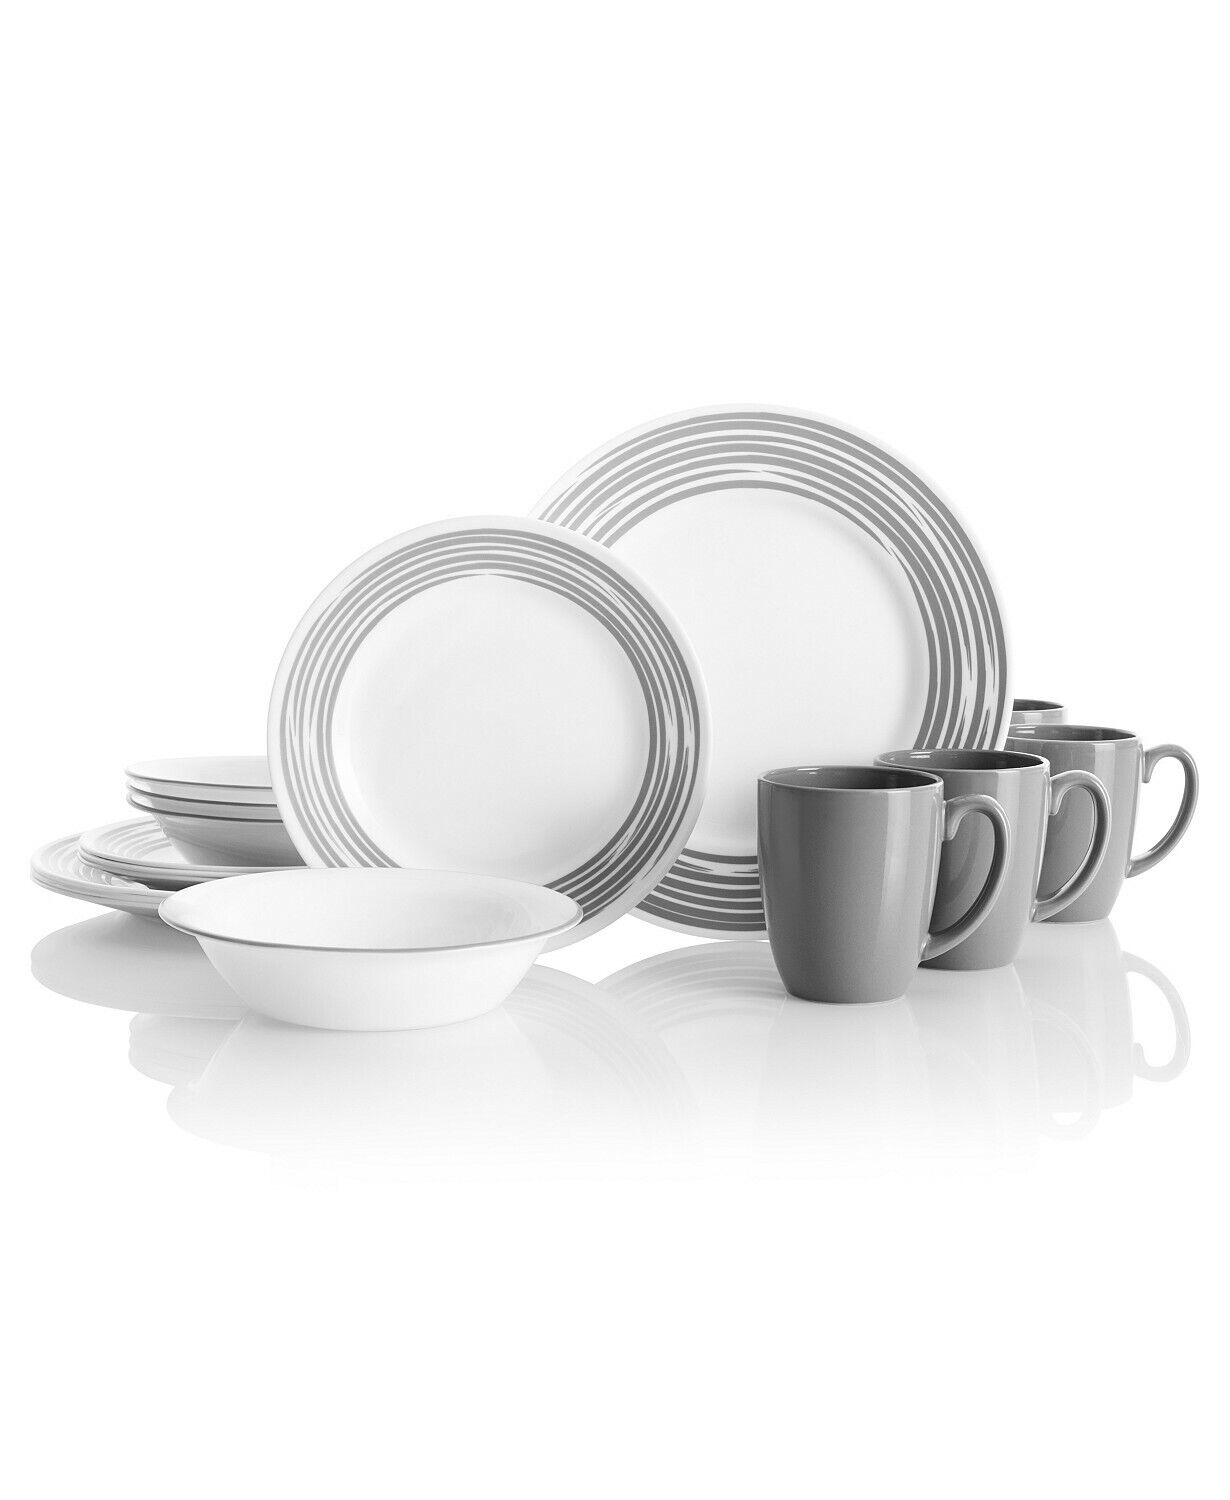 Corelle Brushed Silver 16-Pc. Dinnerware Set, Service for 4